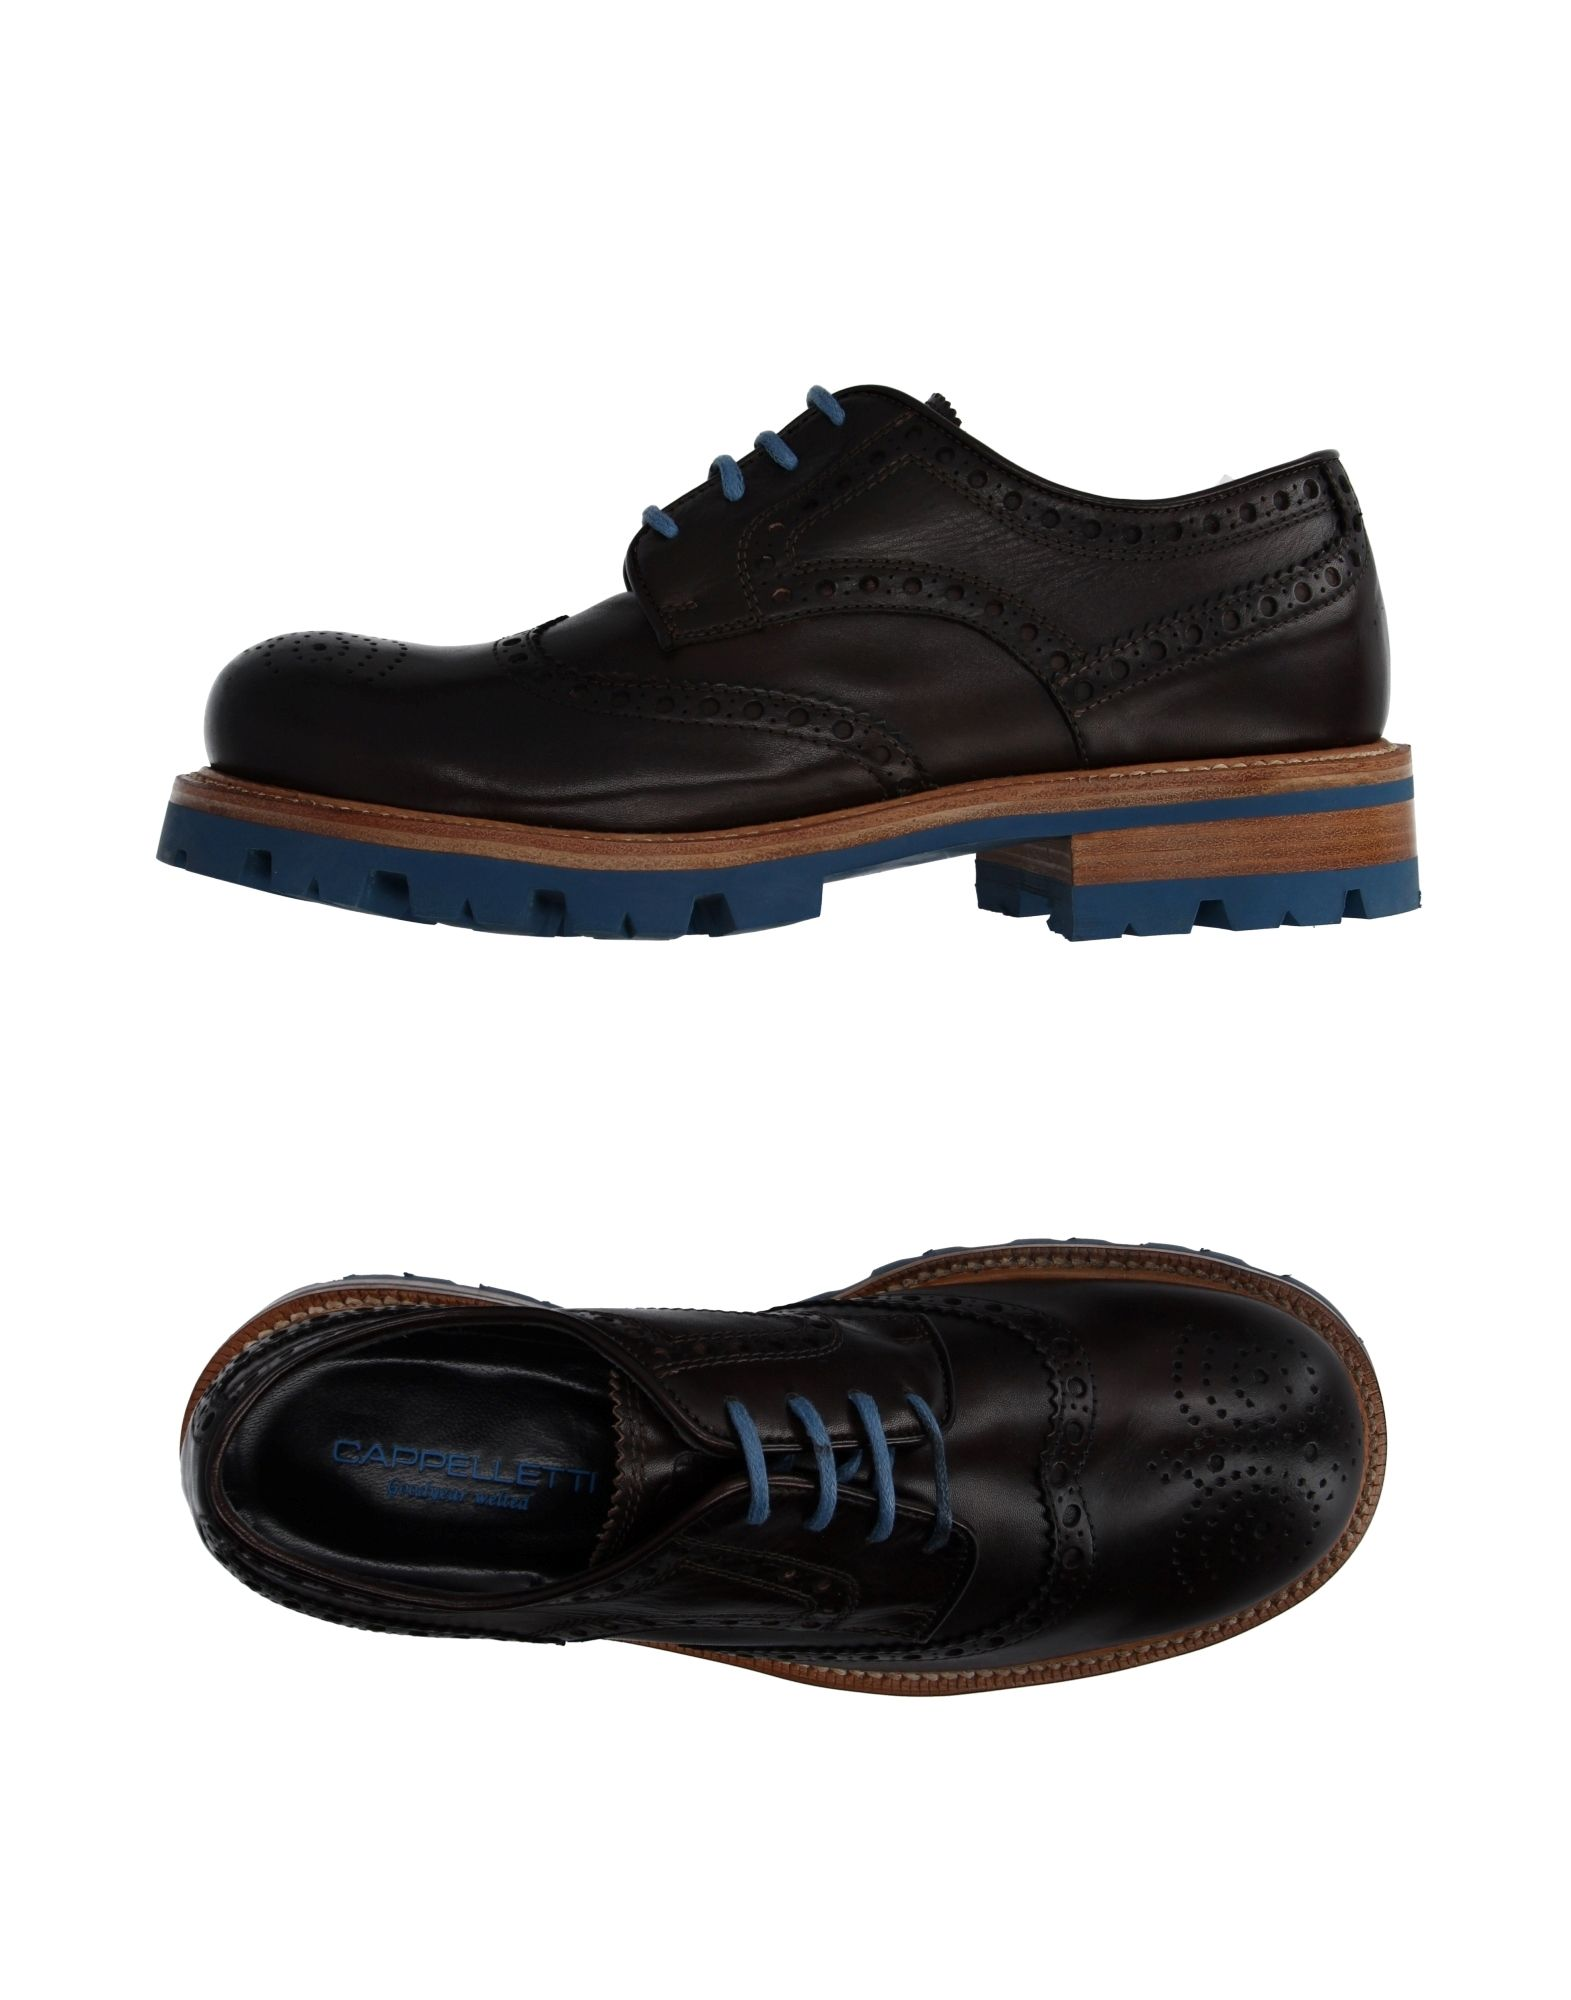 CAPPELLETTI Laced Shoes in Dark Brown